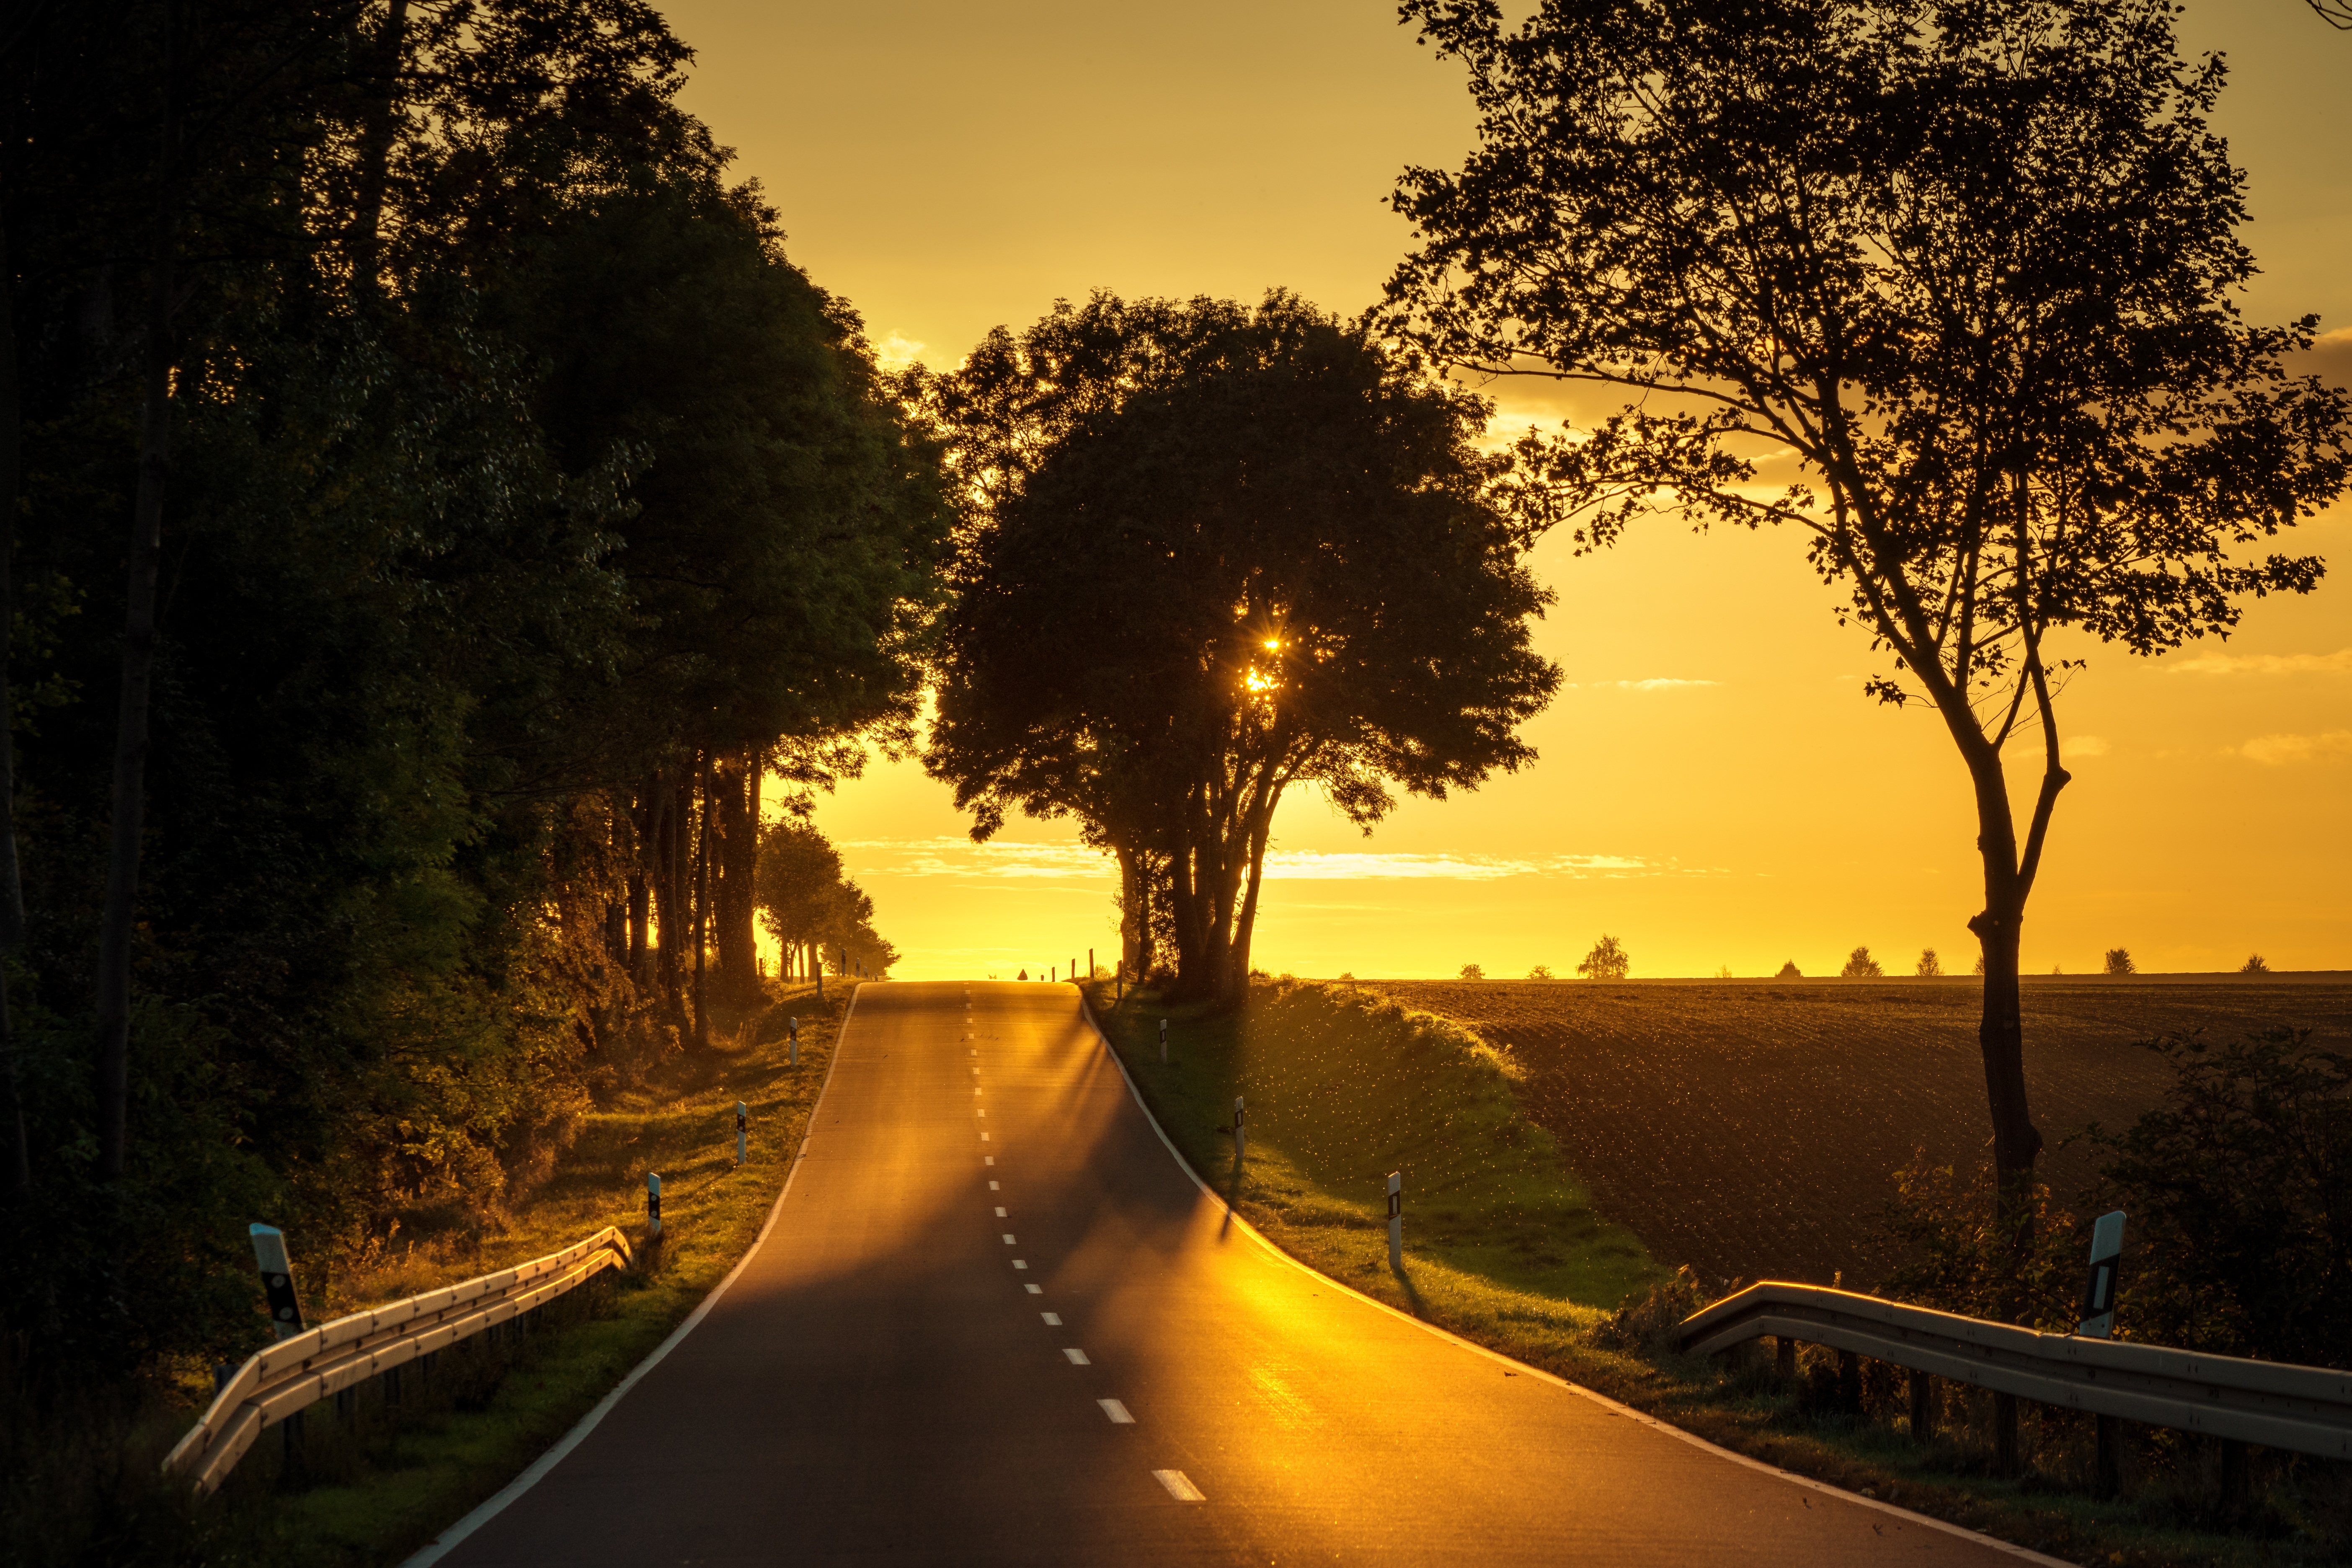 Road sunset back light 5k hd nature 4k wallpapers images backgrounds photos and pictures - Background images 4k hd ...